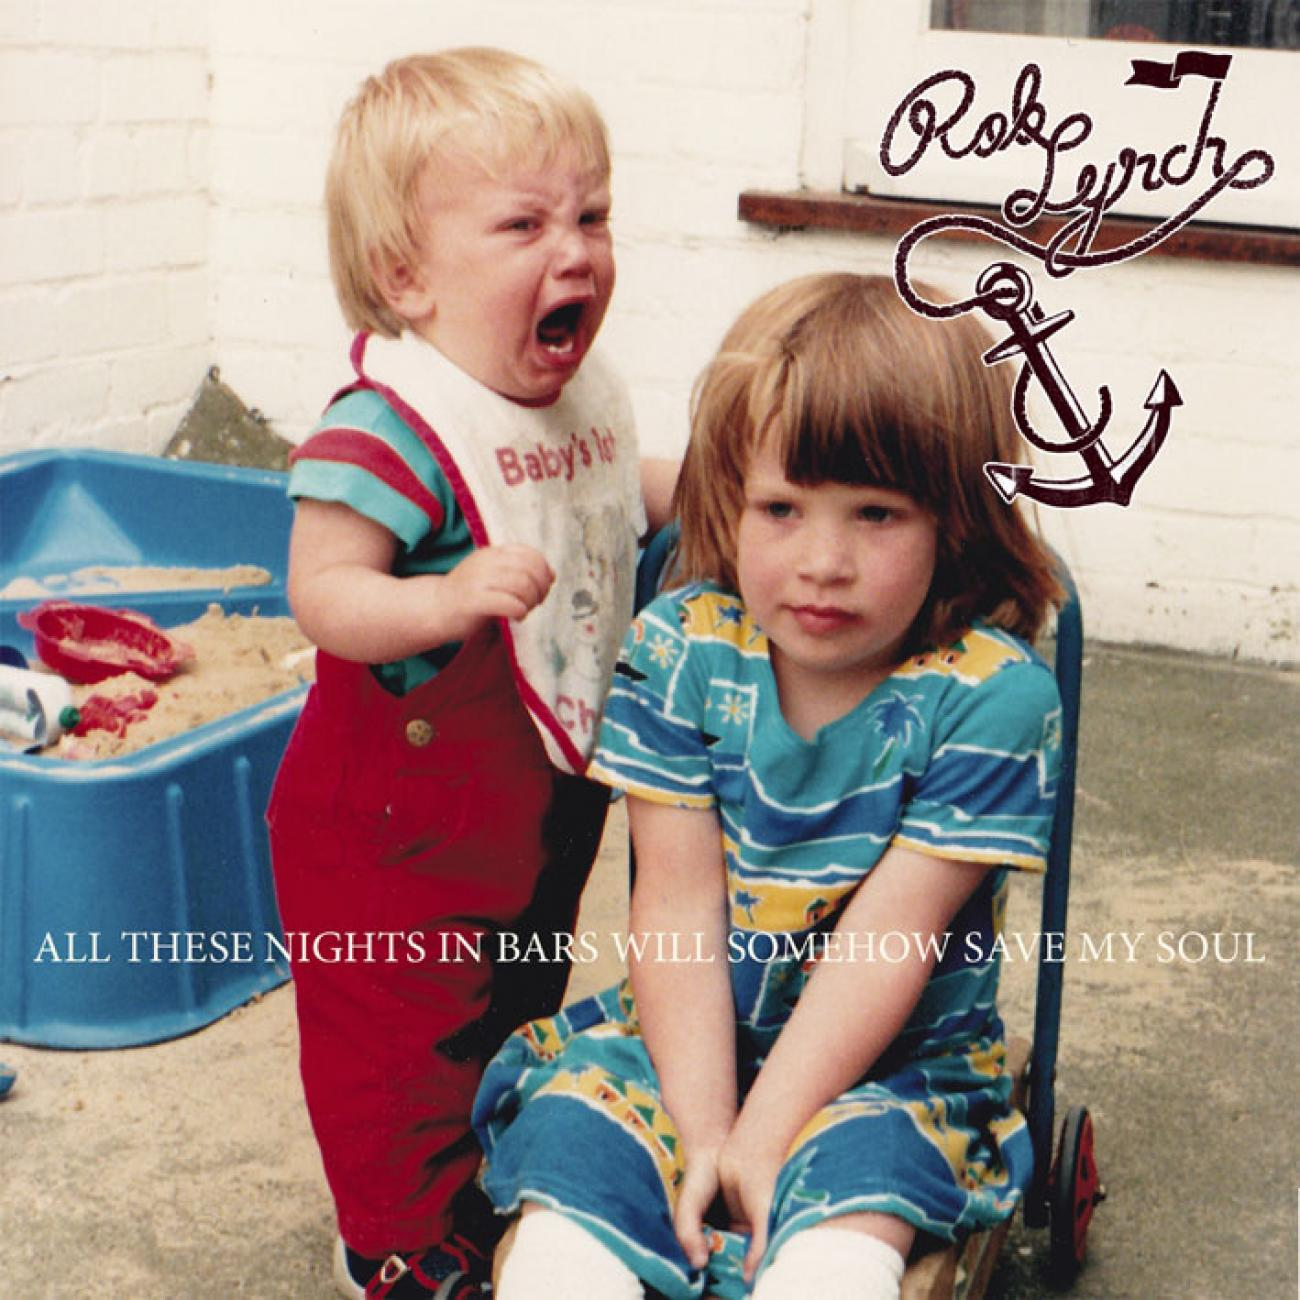 Rob Lynch - All These Nights In Bars Will Somehow Save My Soul